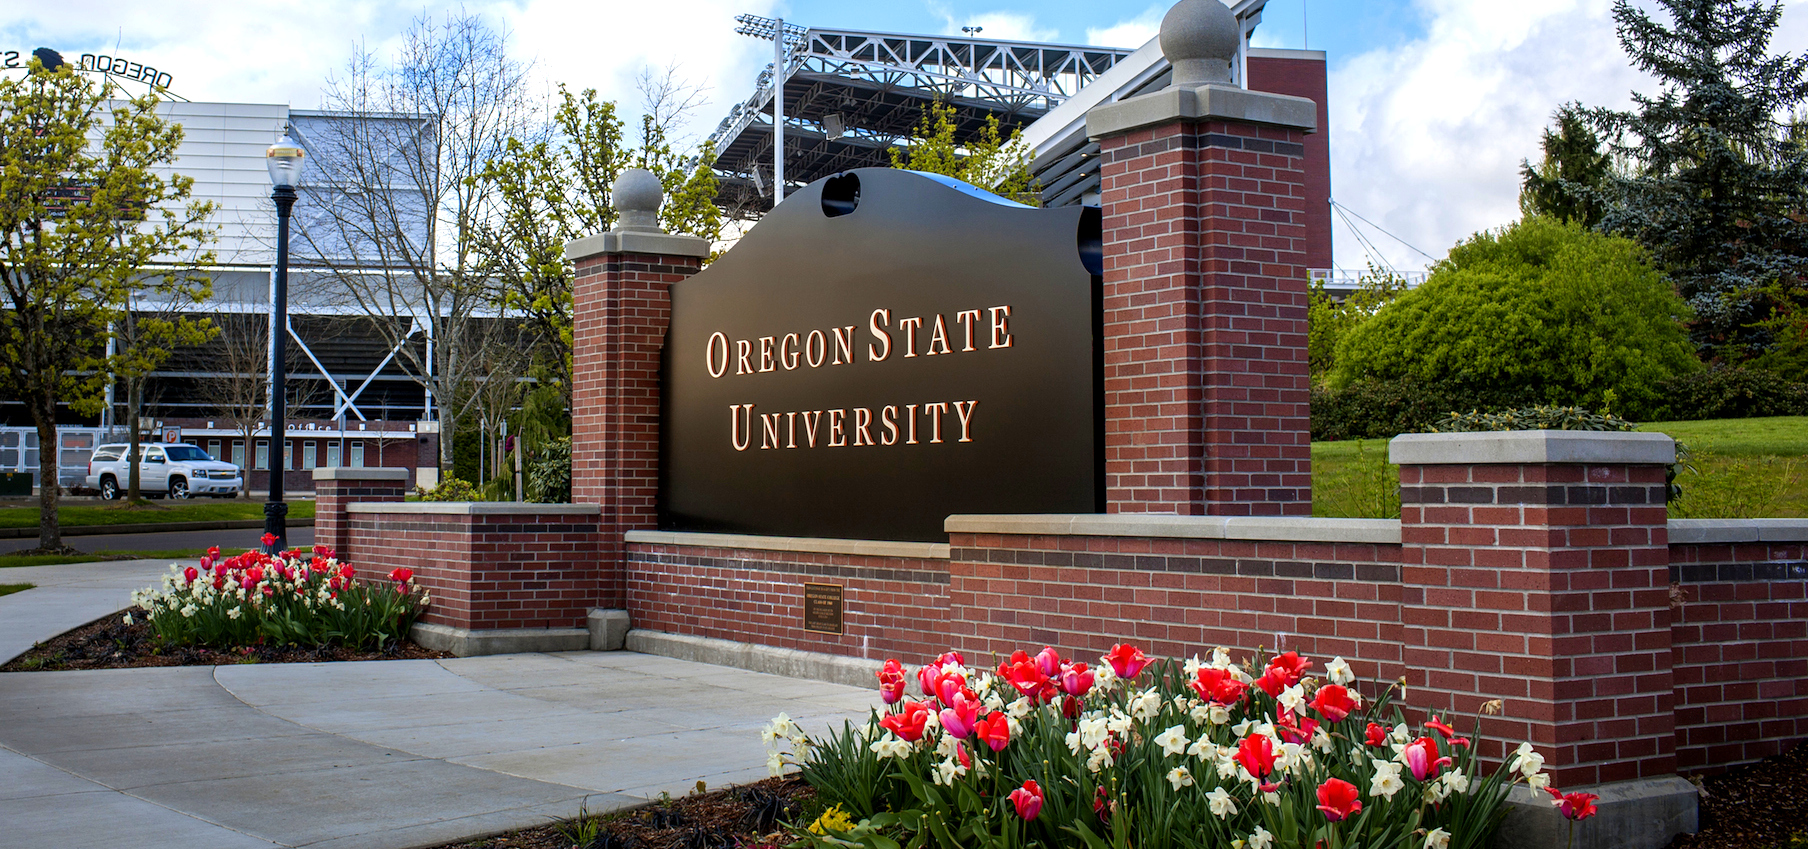 A sign on the Oregon State University campus.